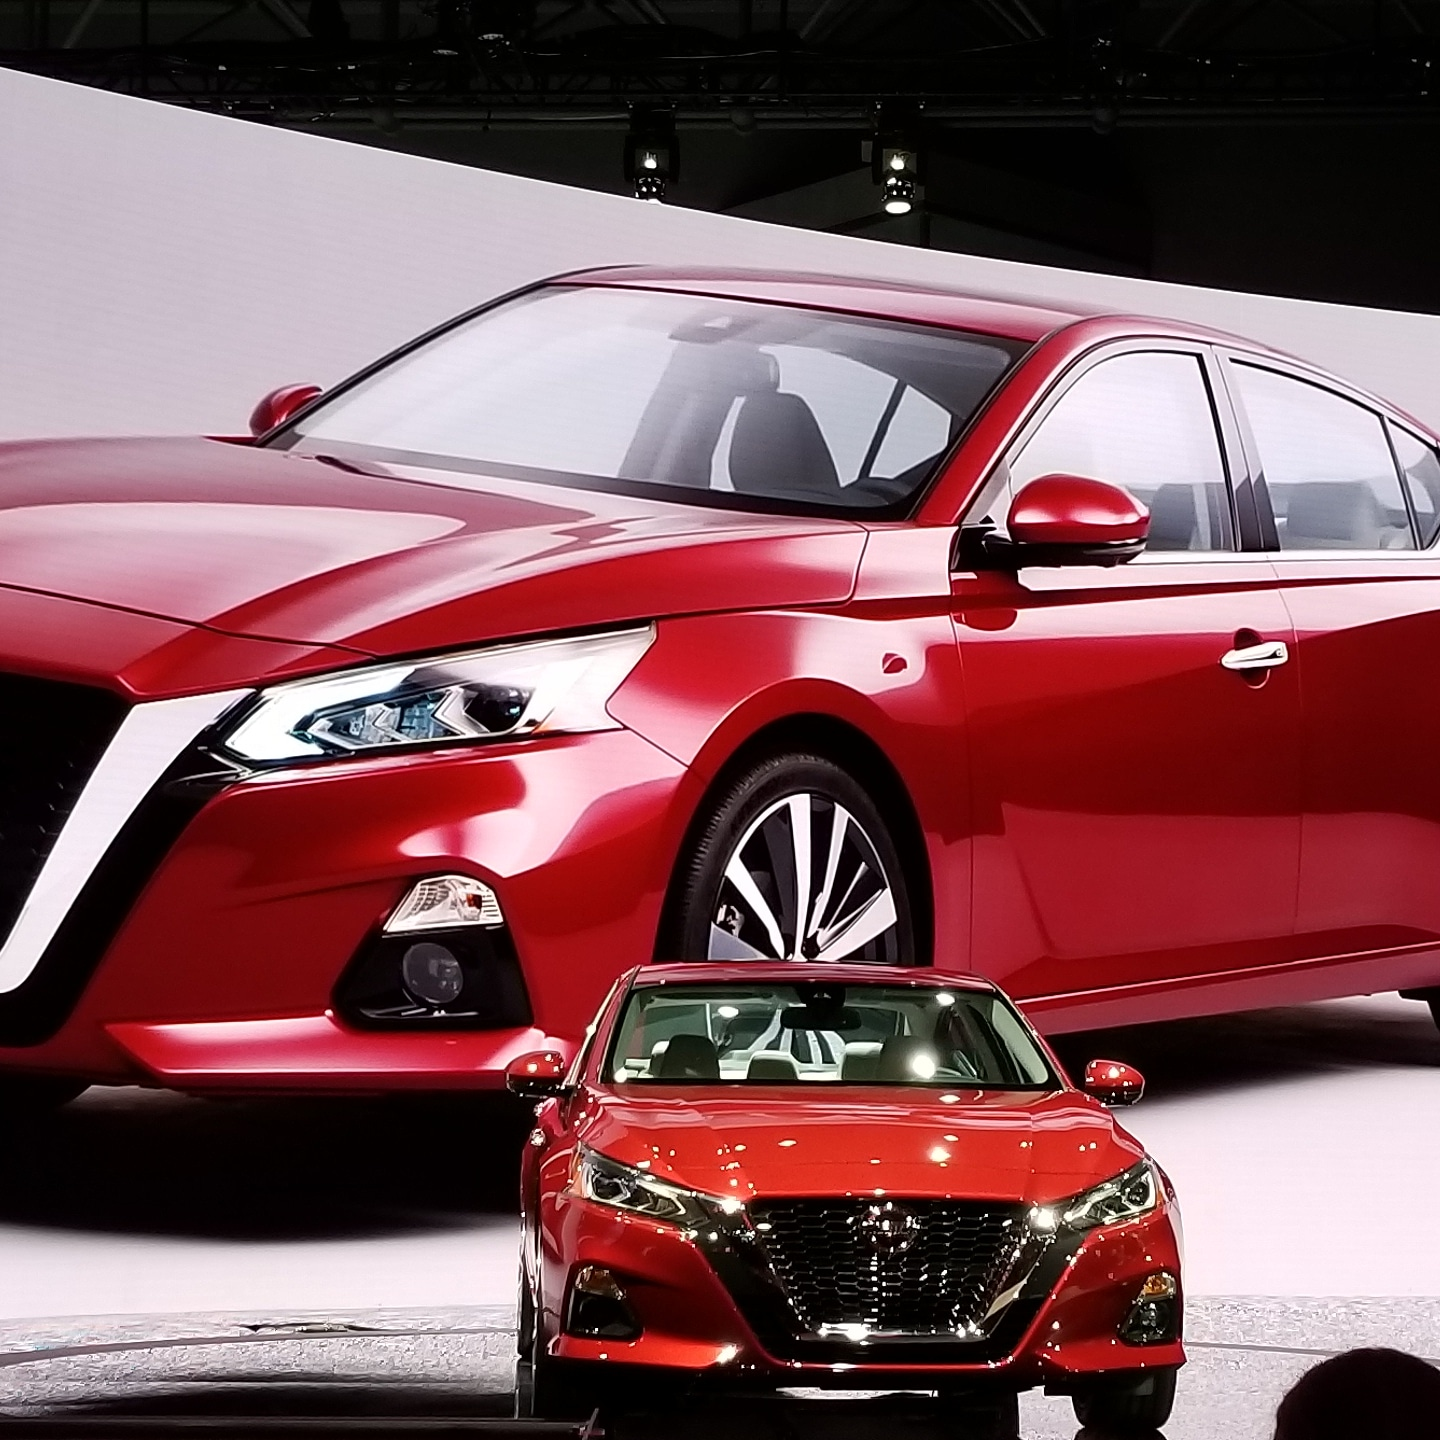 Introducing The All New 2019 Nissan Altima At NYC Auto